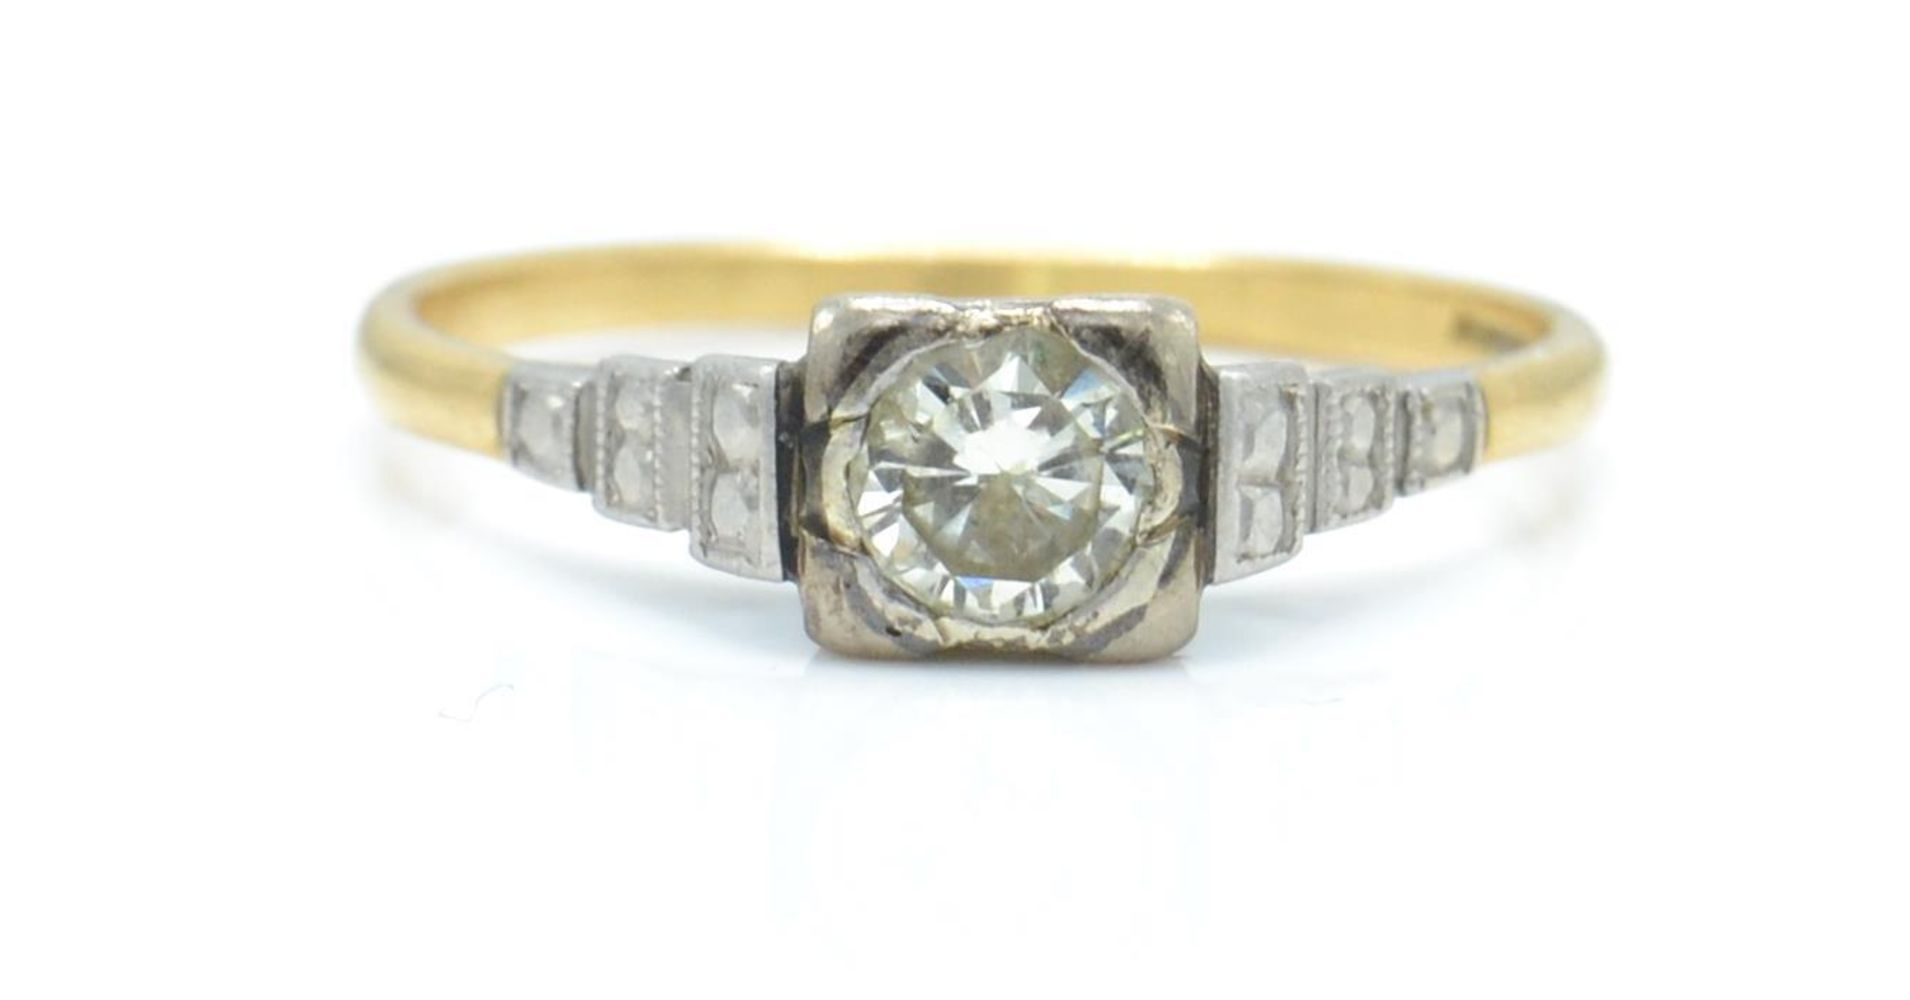 Fine Jewellery, Gold & Silver Auction - Worldwide Postage Available On All Items - see www.eastbristol.co.uk